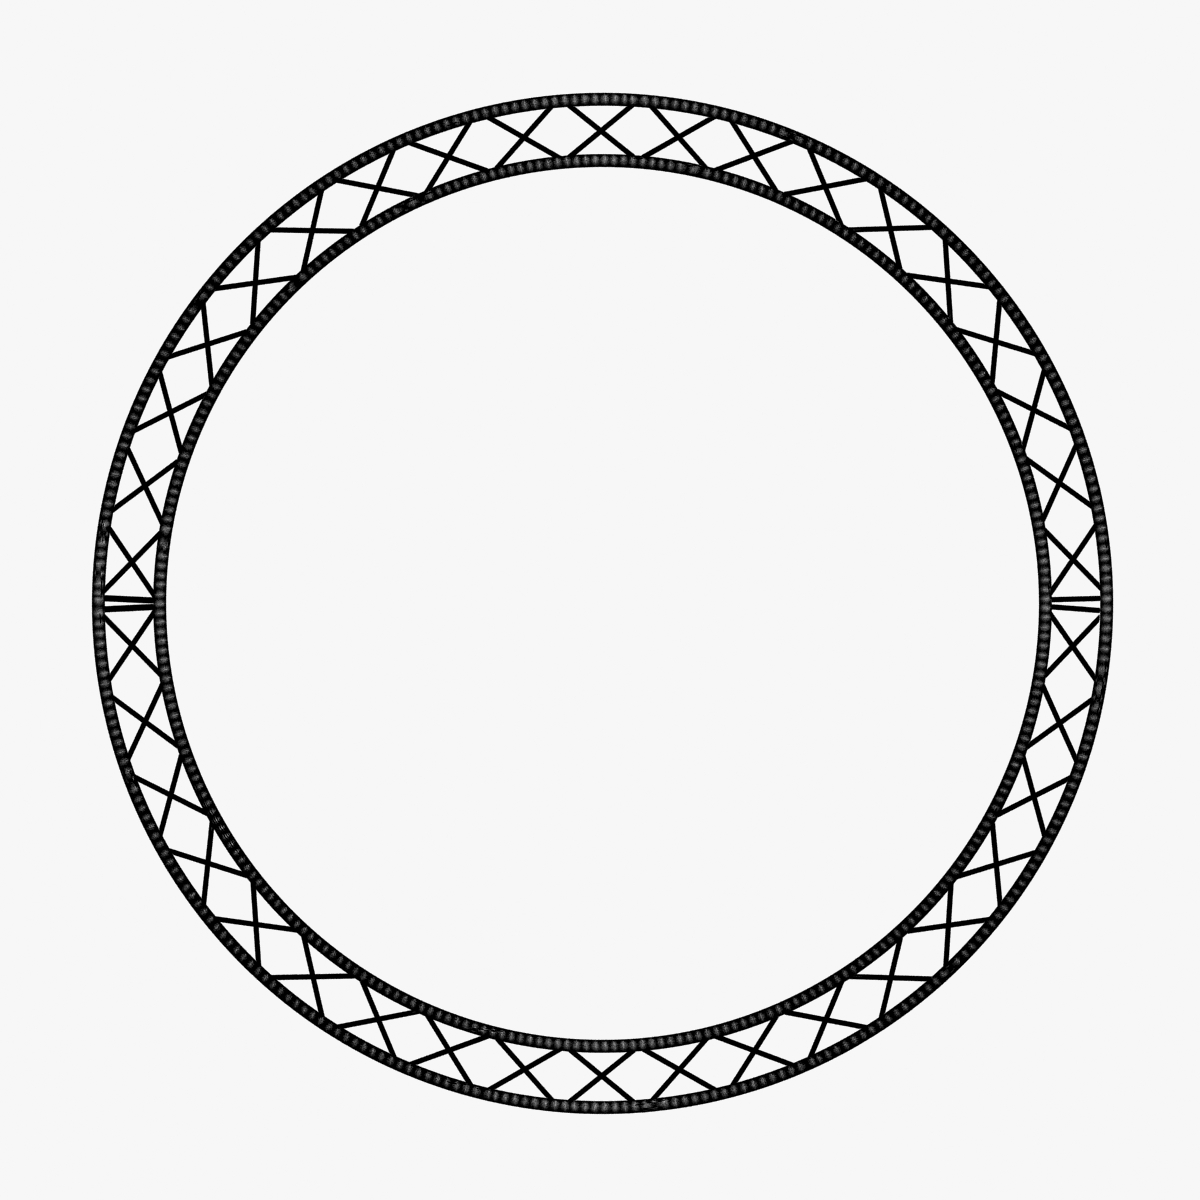 circle square truss (400cm) 3d model max fbx obj 218638